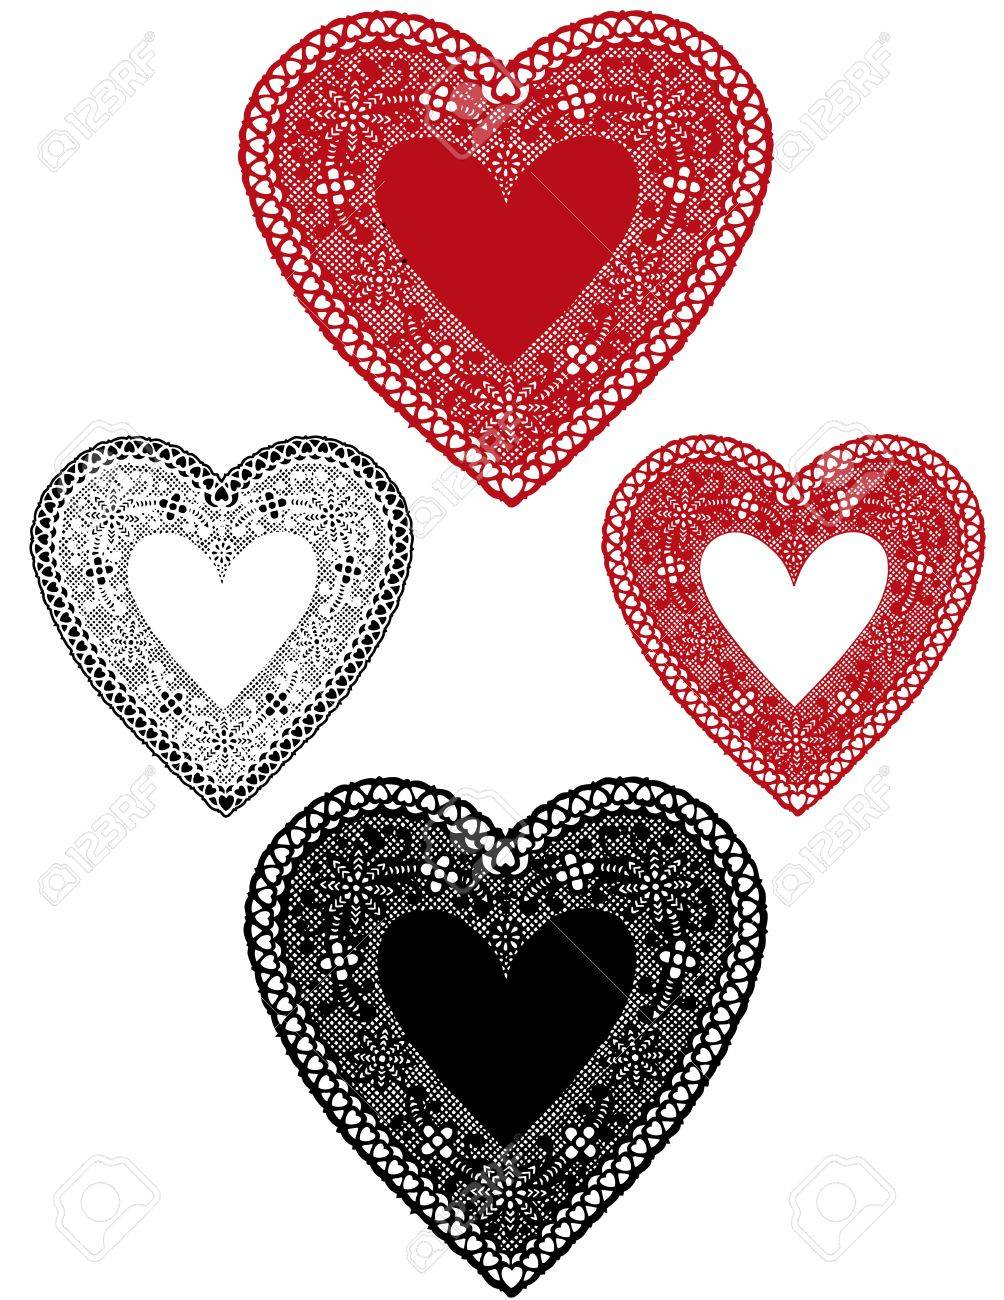 Vintage Red, Black Lace Heart Doilies with copy space for Valentines Day, holidays. Stock Vector - 11553653